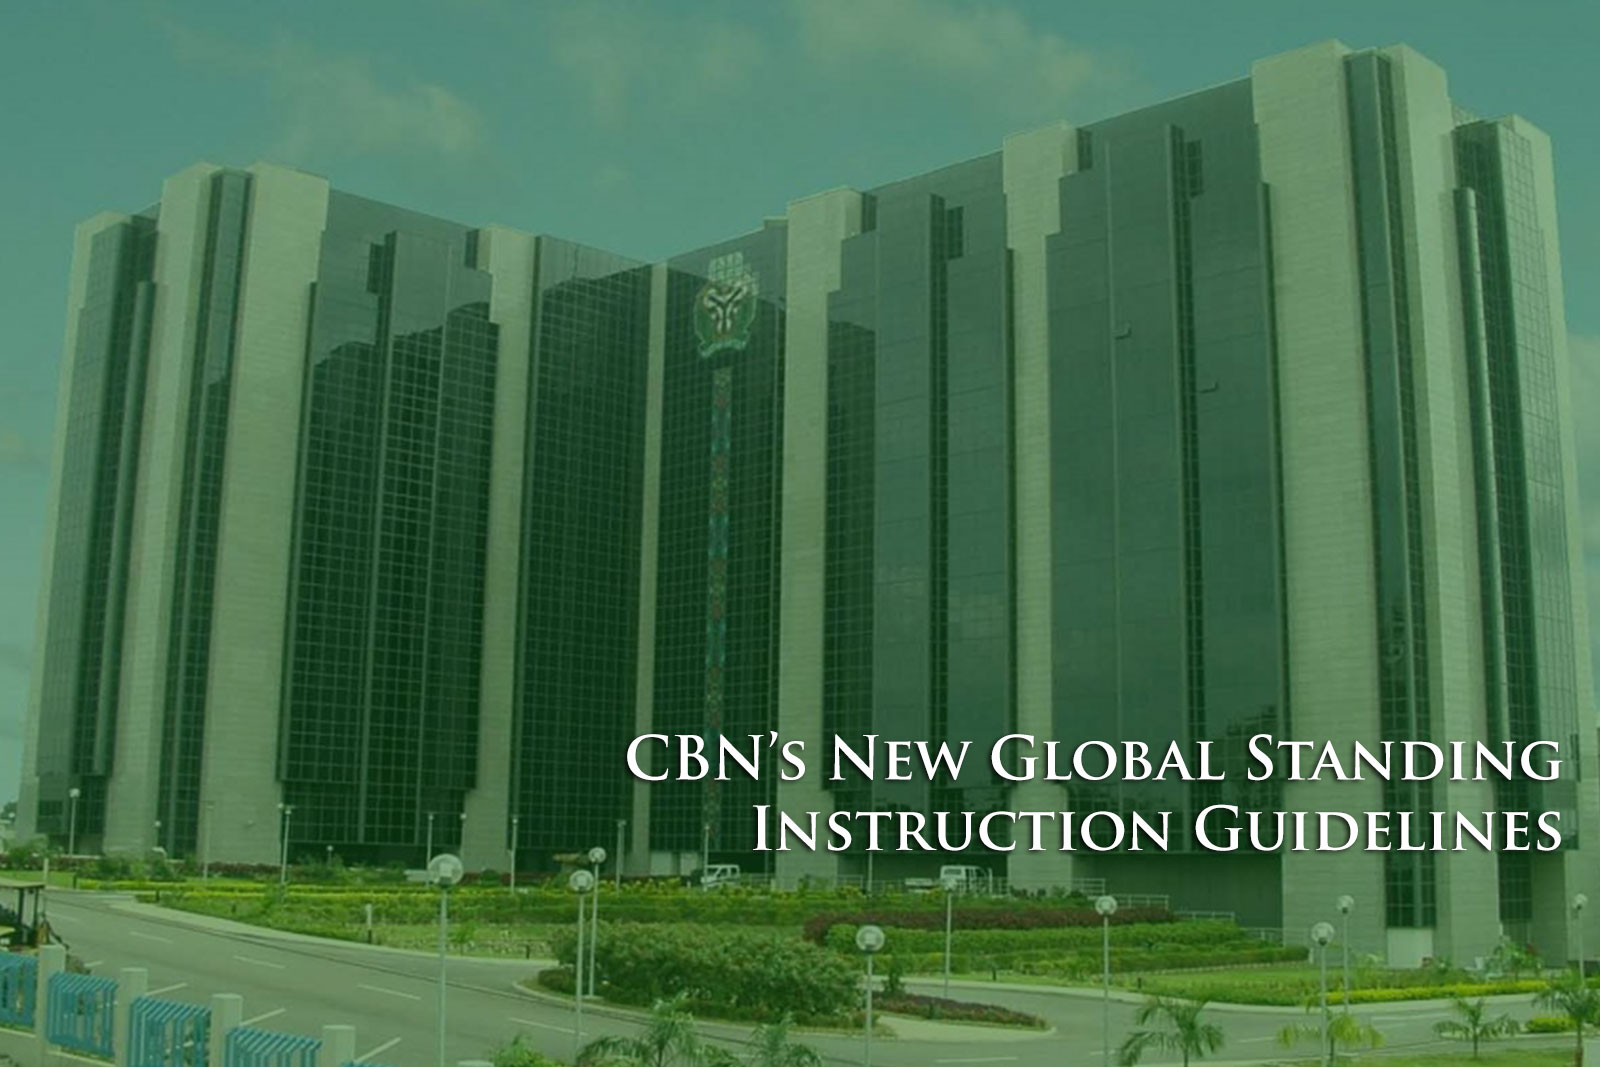 CBN's New Global Standing Instruction Guidelines